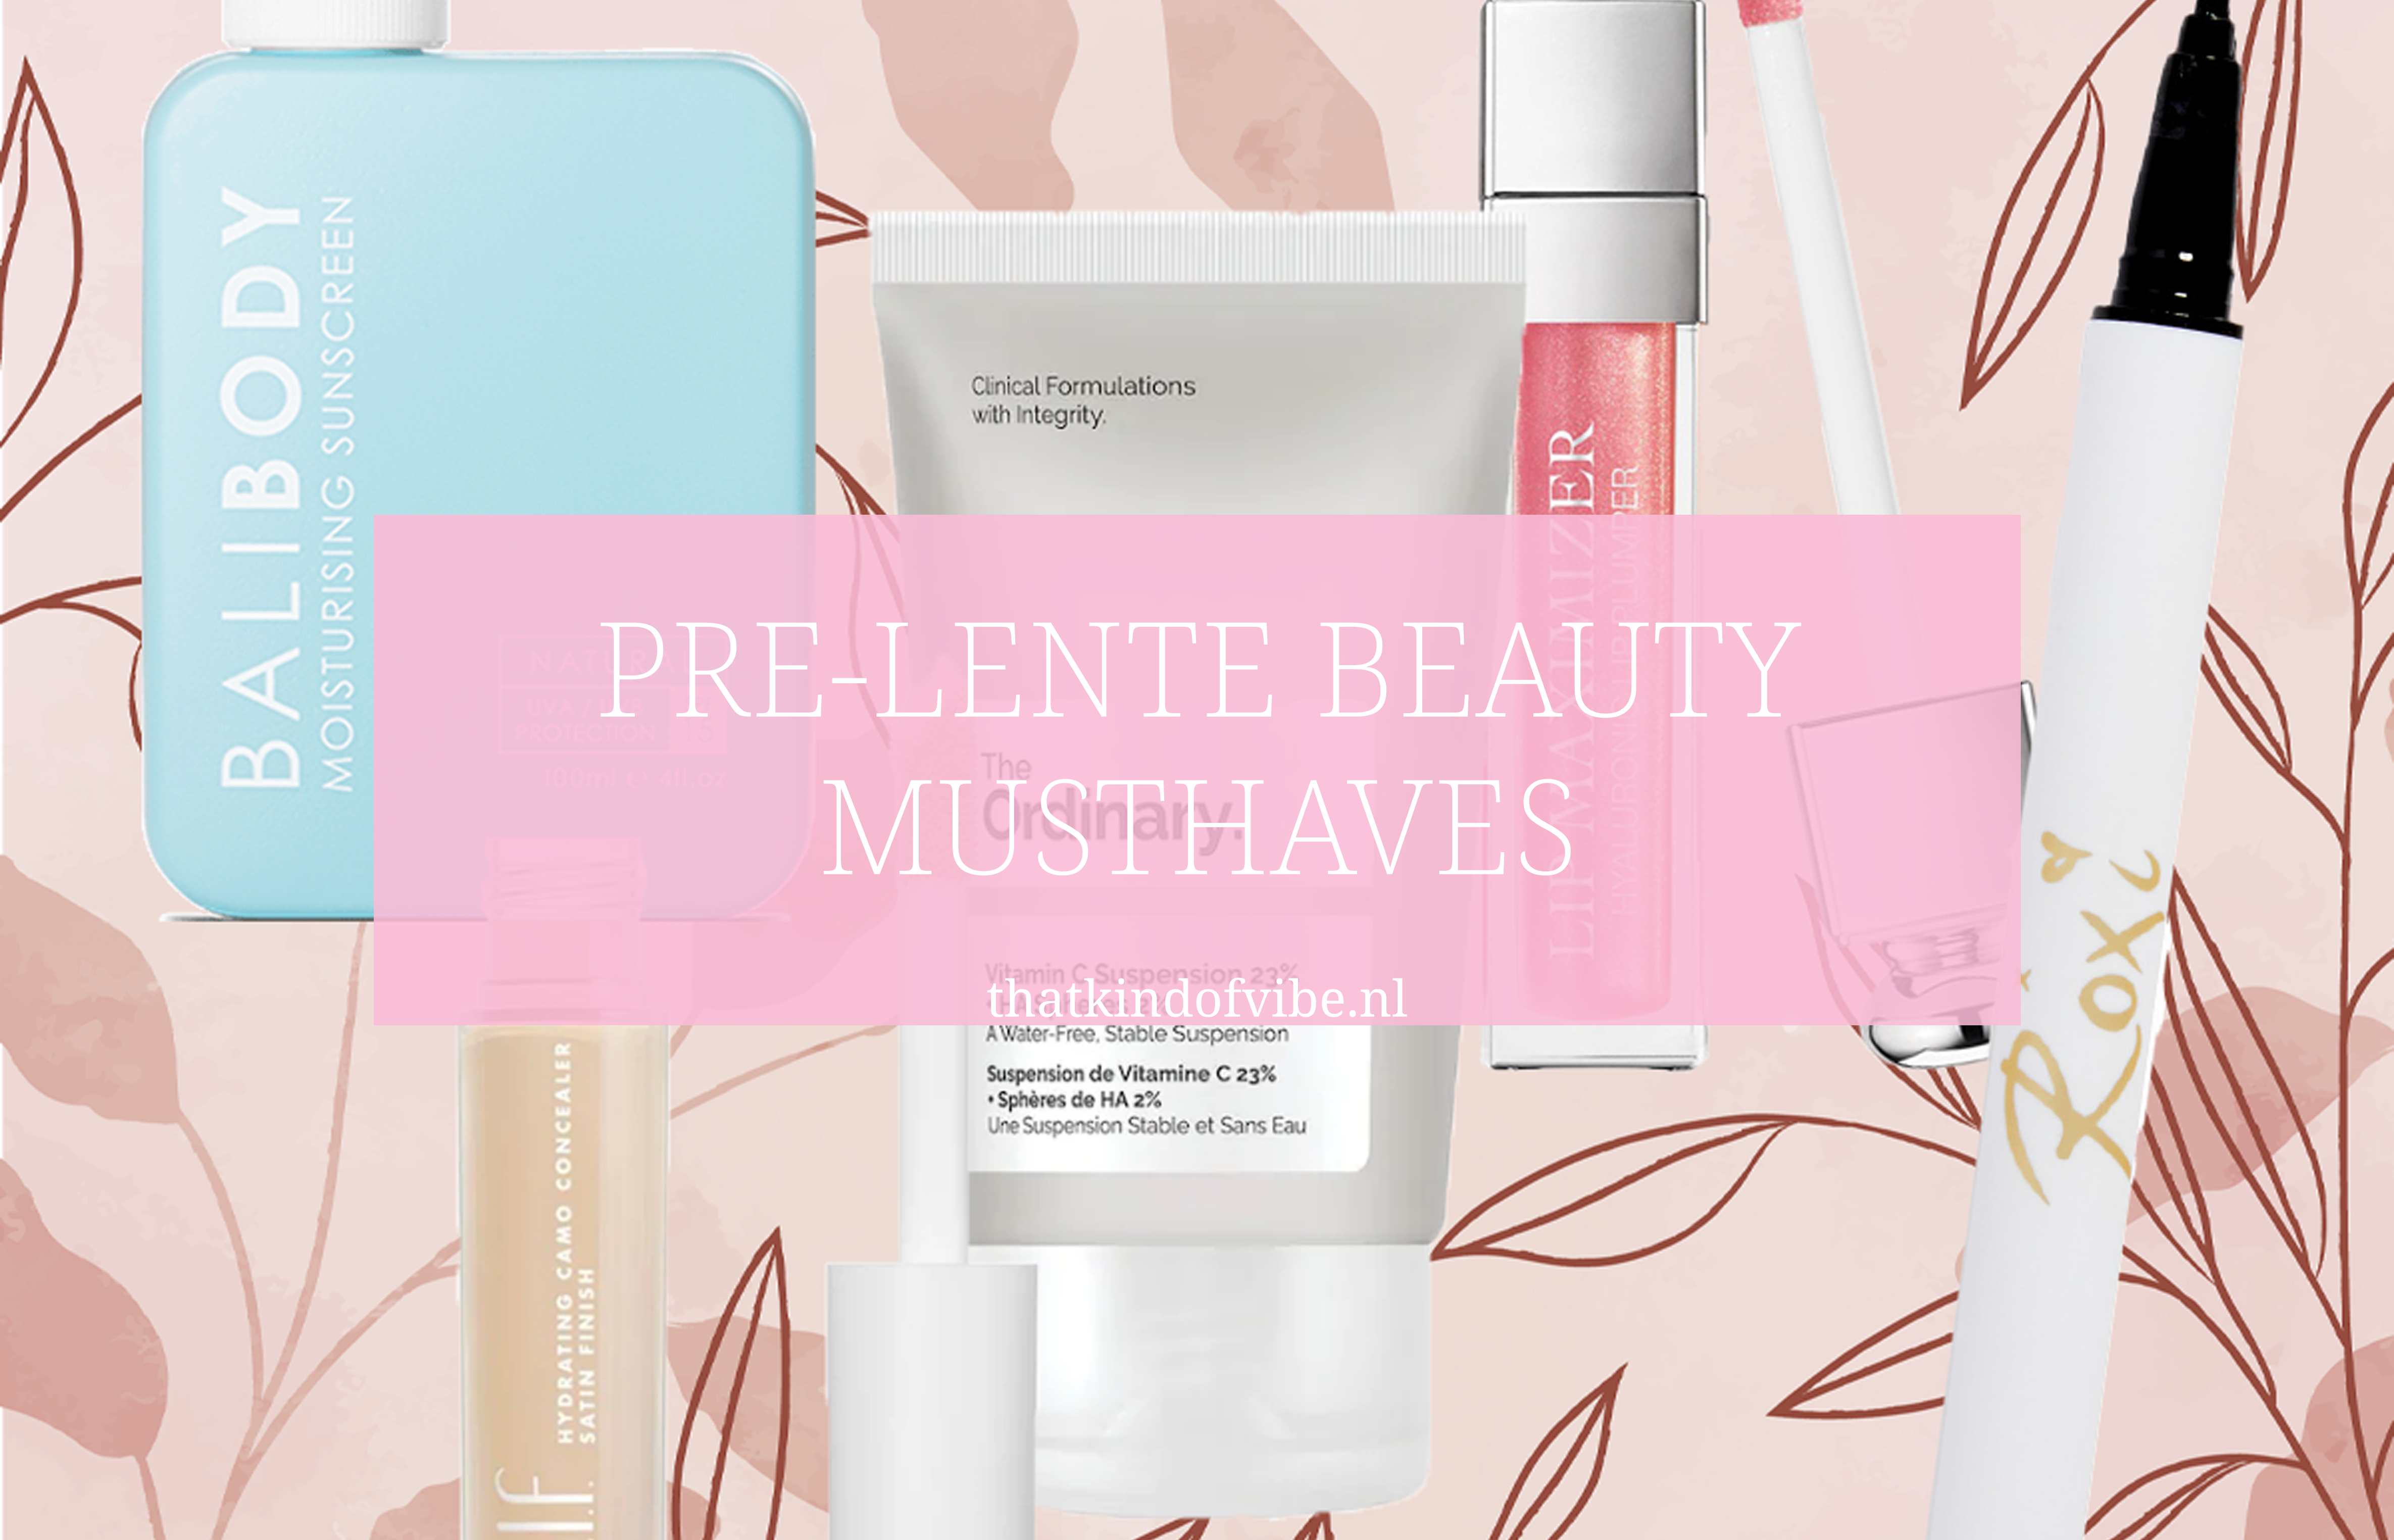 Pre-lente beauty musthaves 2021